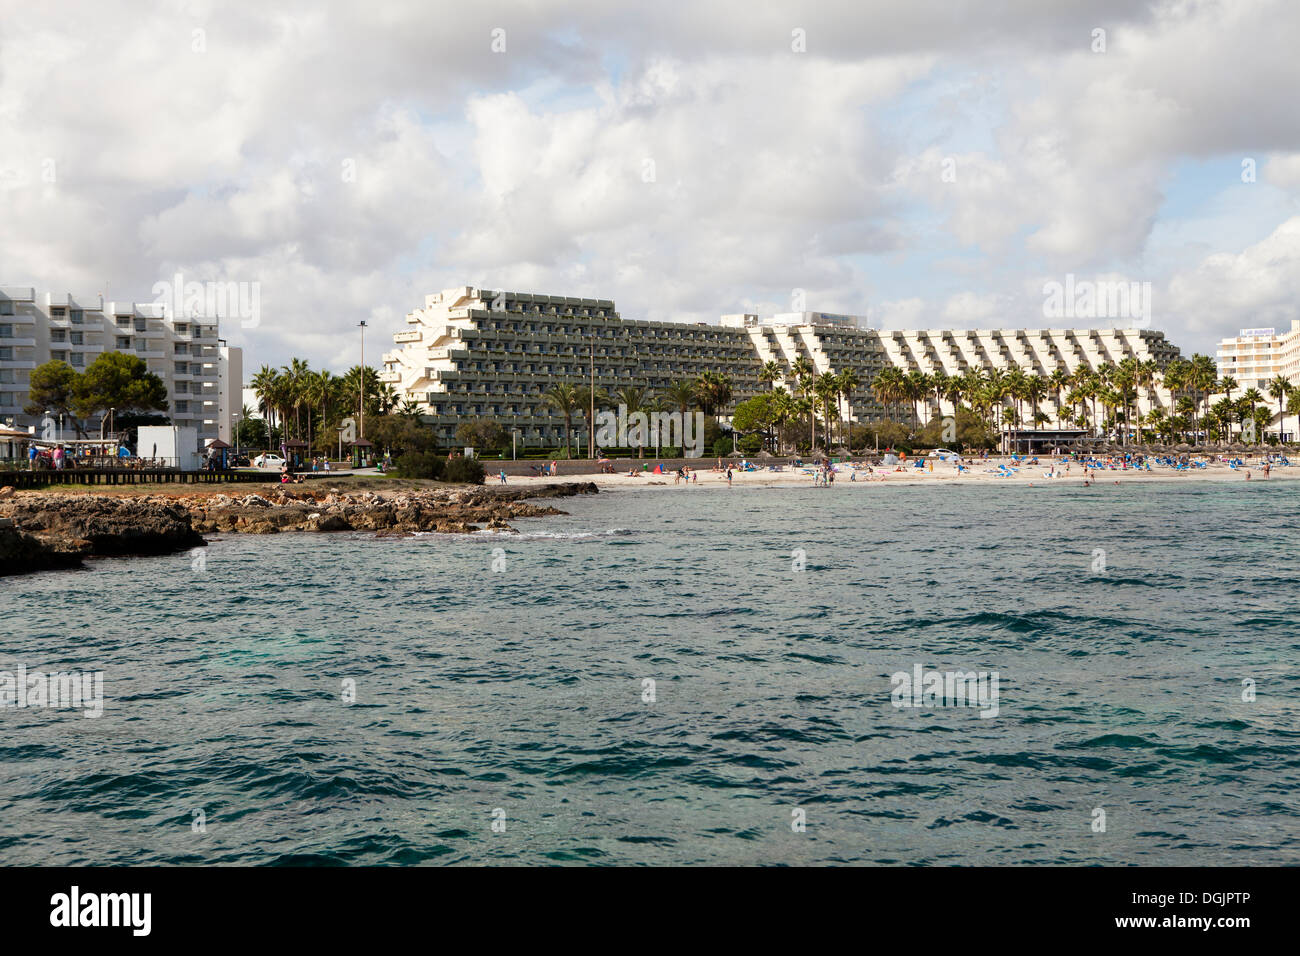 View of Sa Coma in Majorca from the sea - Stock Image